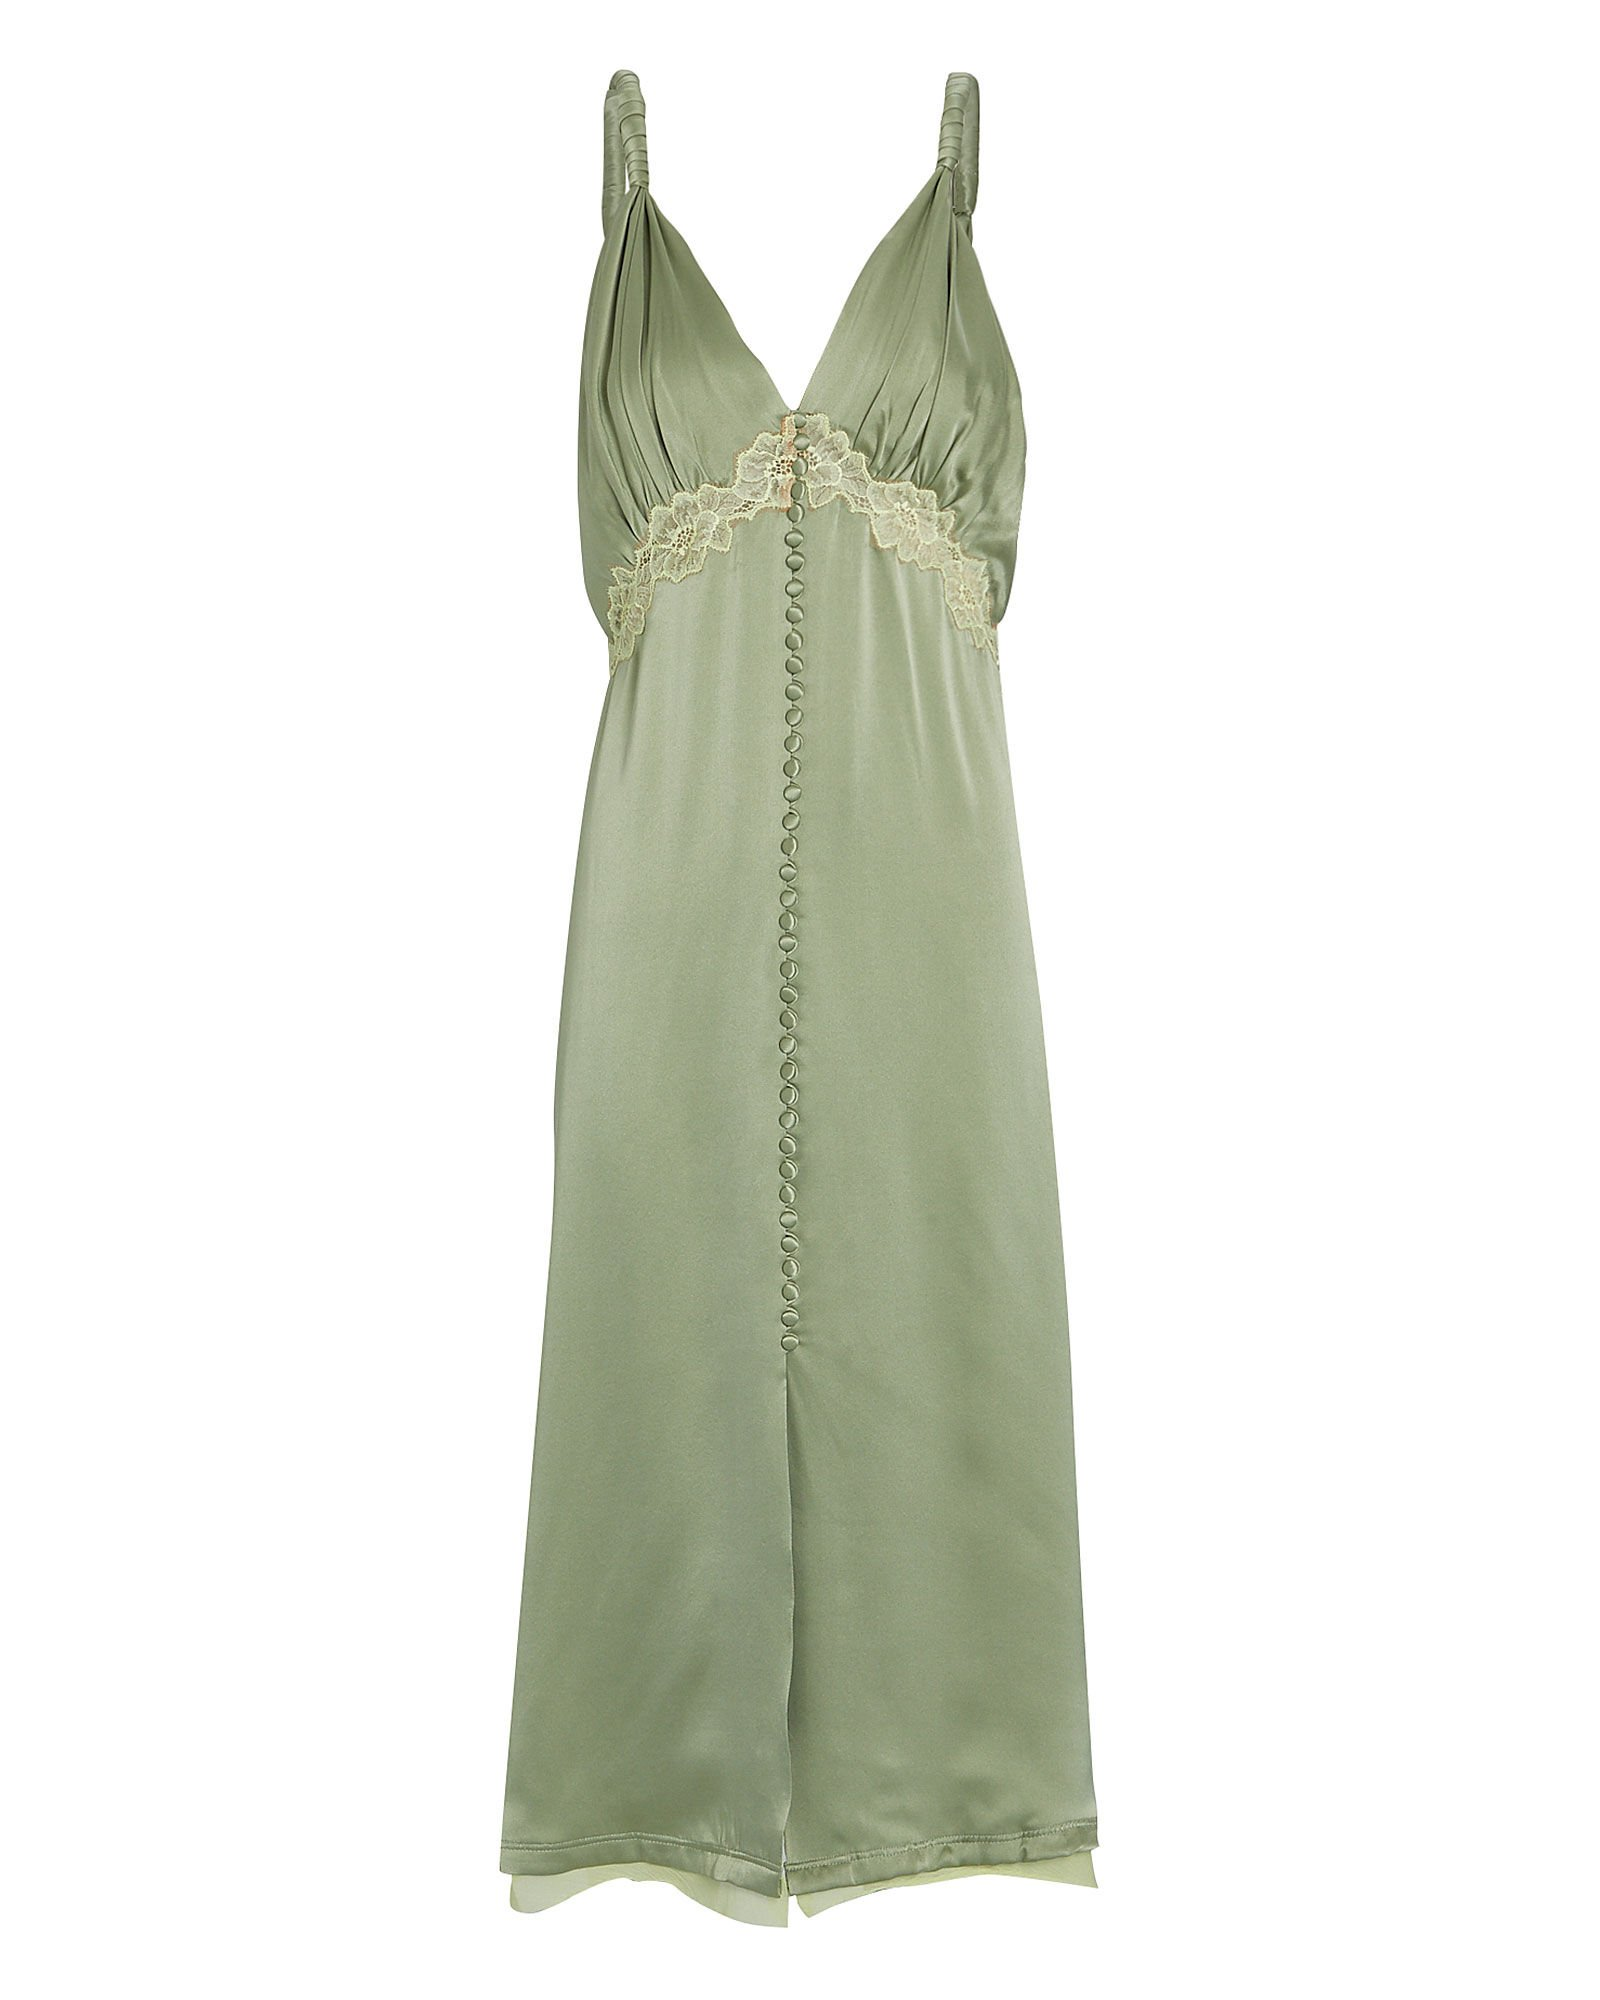 Kendra Lace-Trimmed Silk Dress, PALE GREEN, hi-res